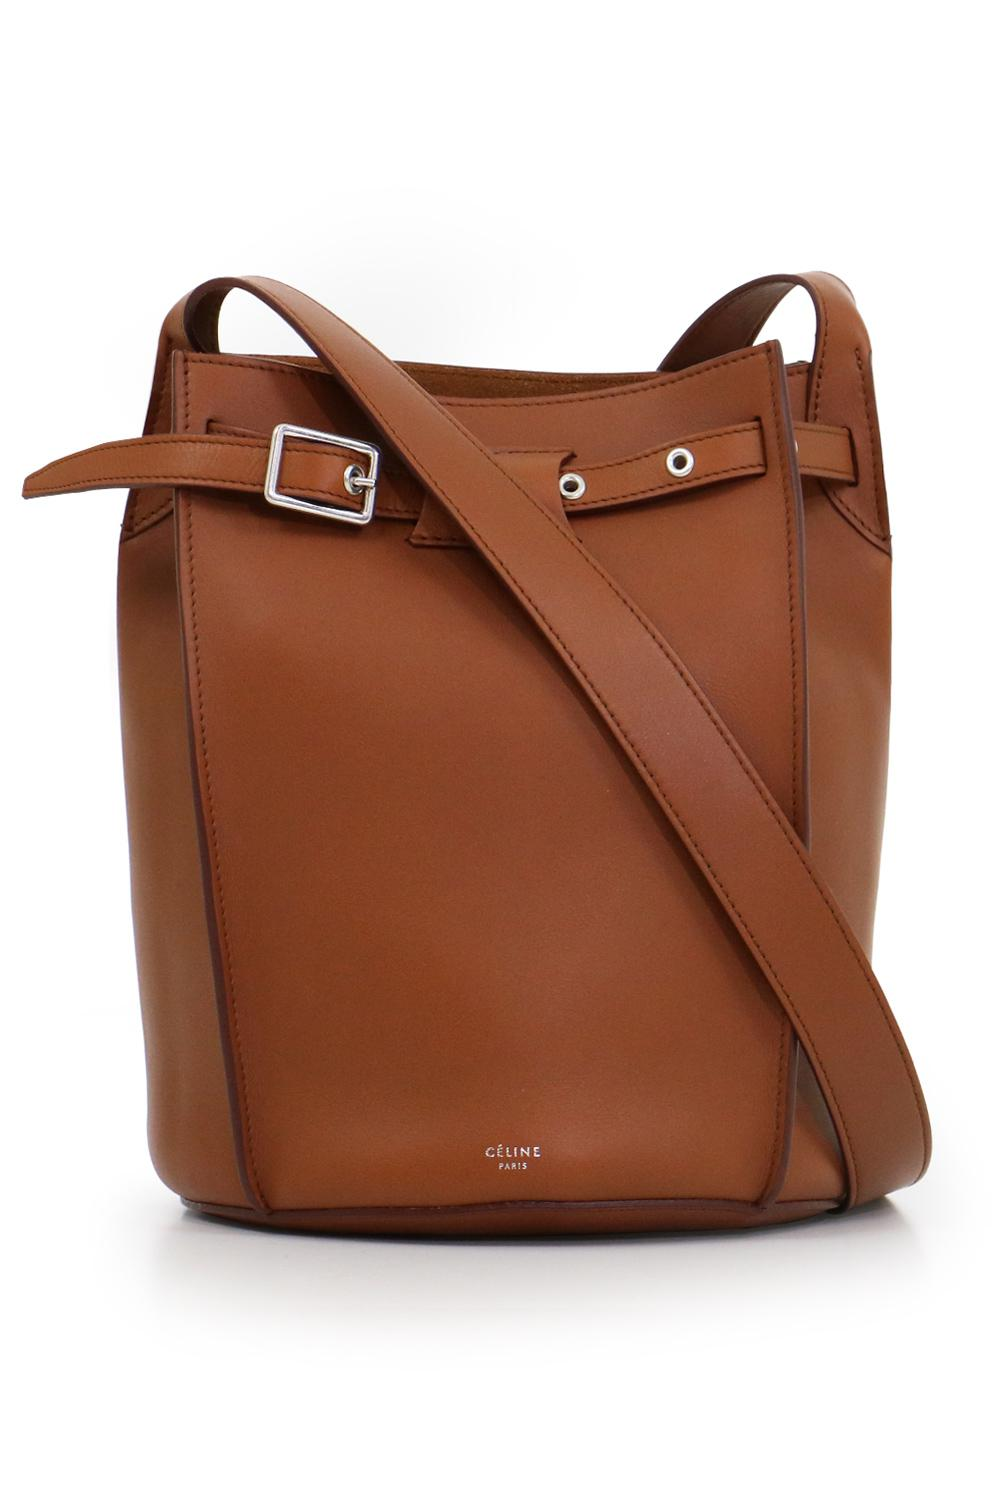 Lyst - Céline Big Bag Bucket Bag With Long Strap Tan in Brown 4cc77a45dae71